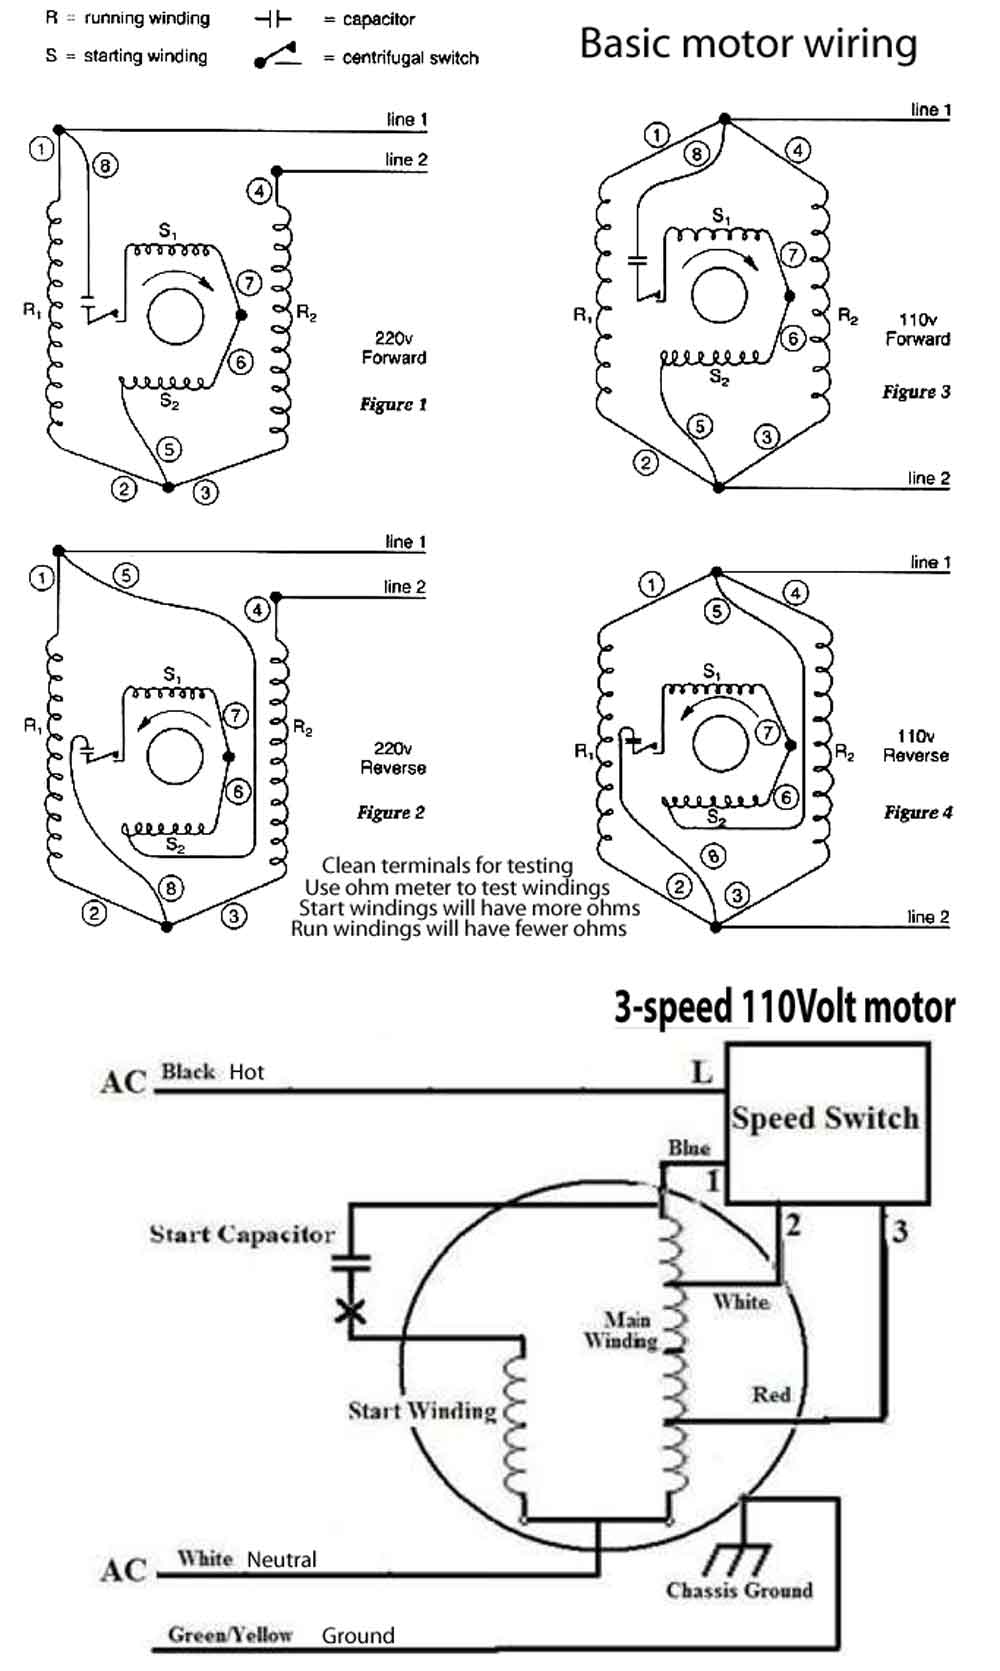 Motor wiring 500 how to wire 3 speed fan switch Cooling Fan Relay Wiring Diagram at honlapkeszites.co